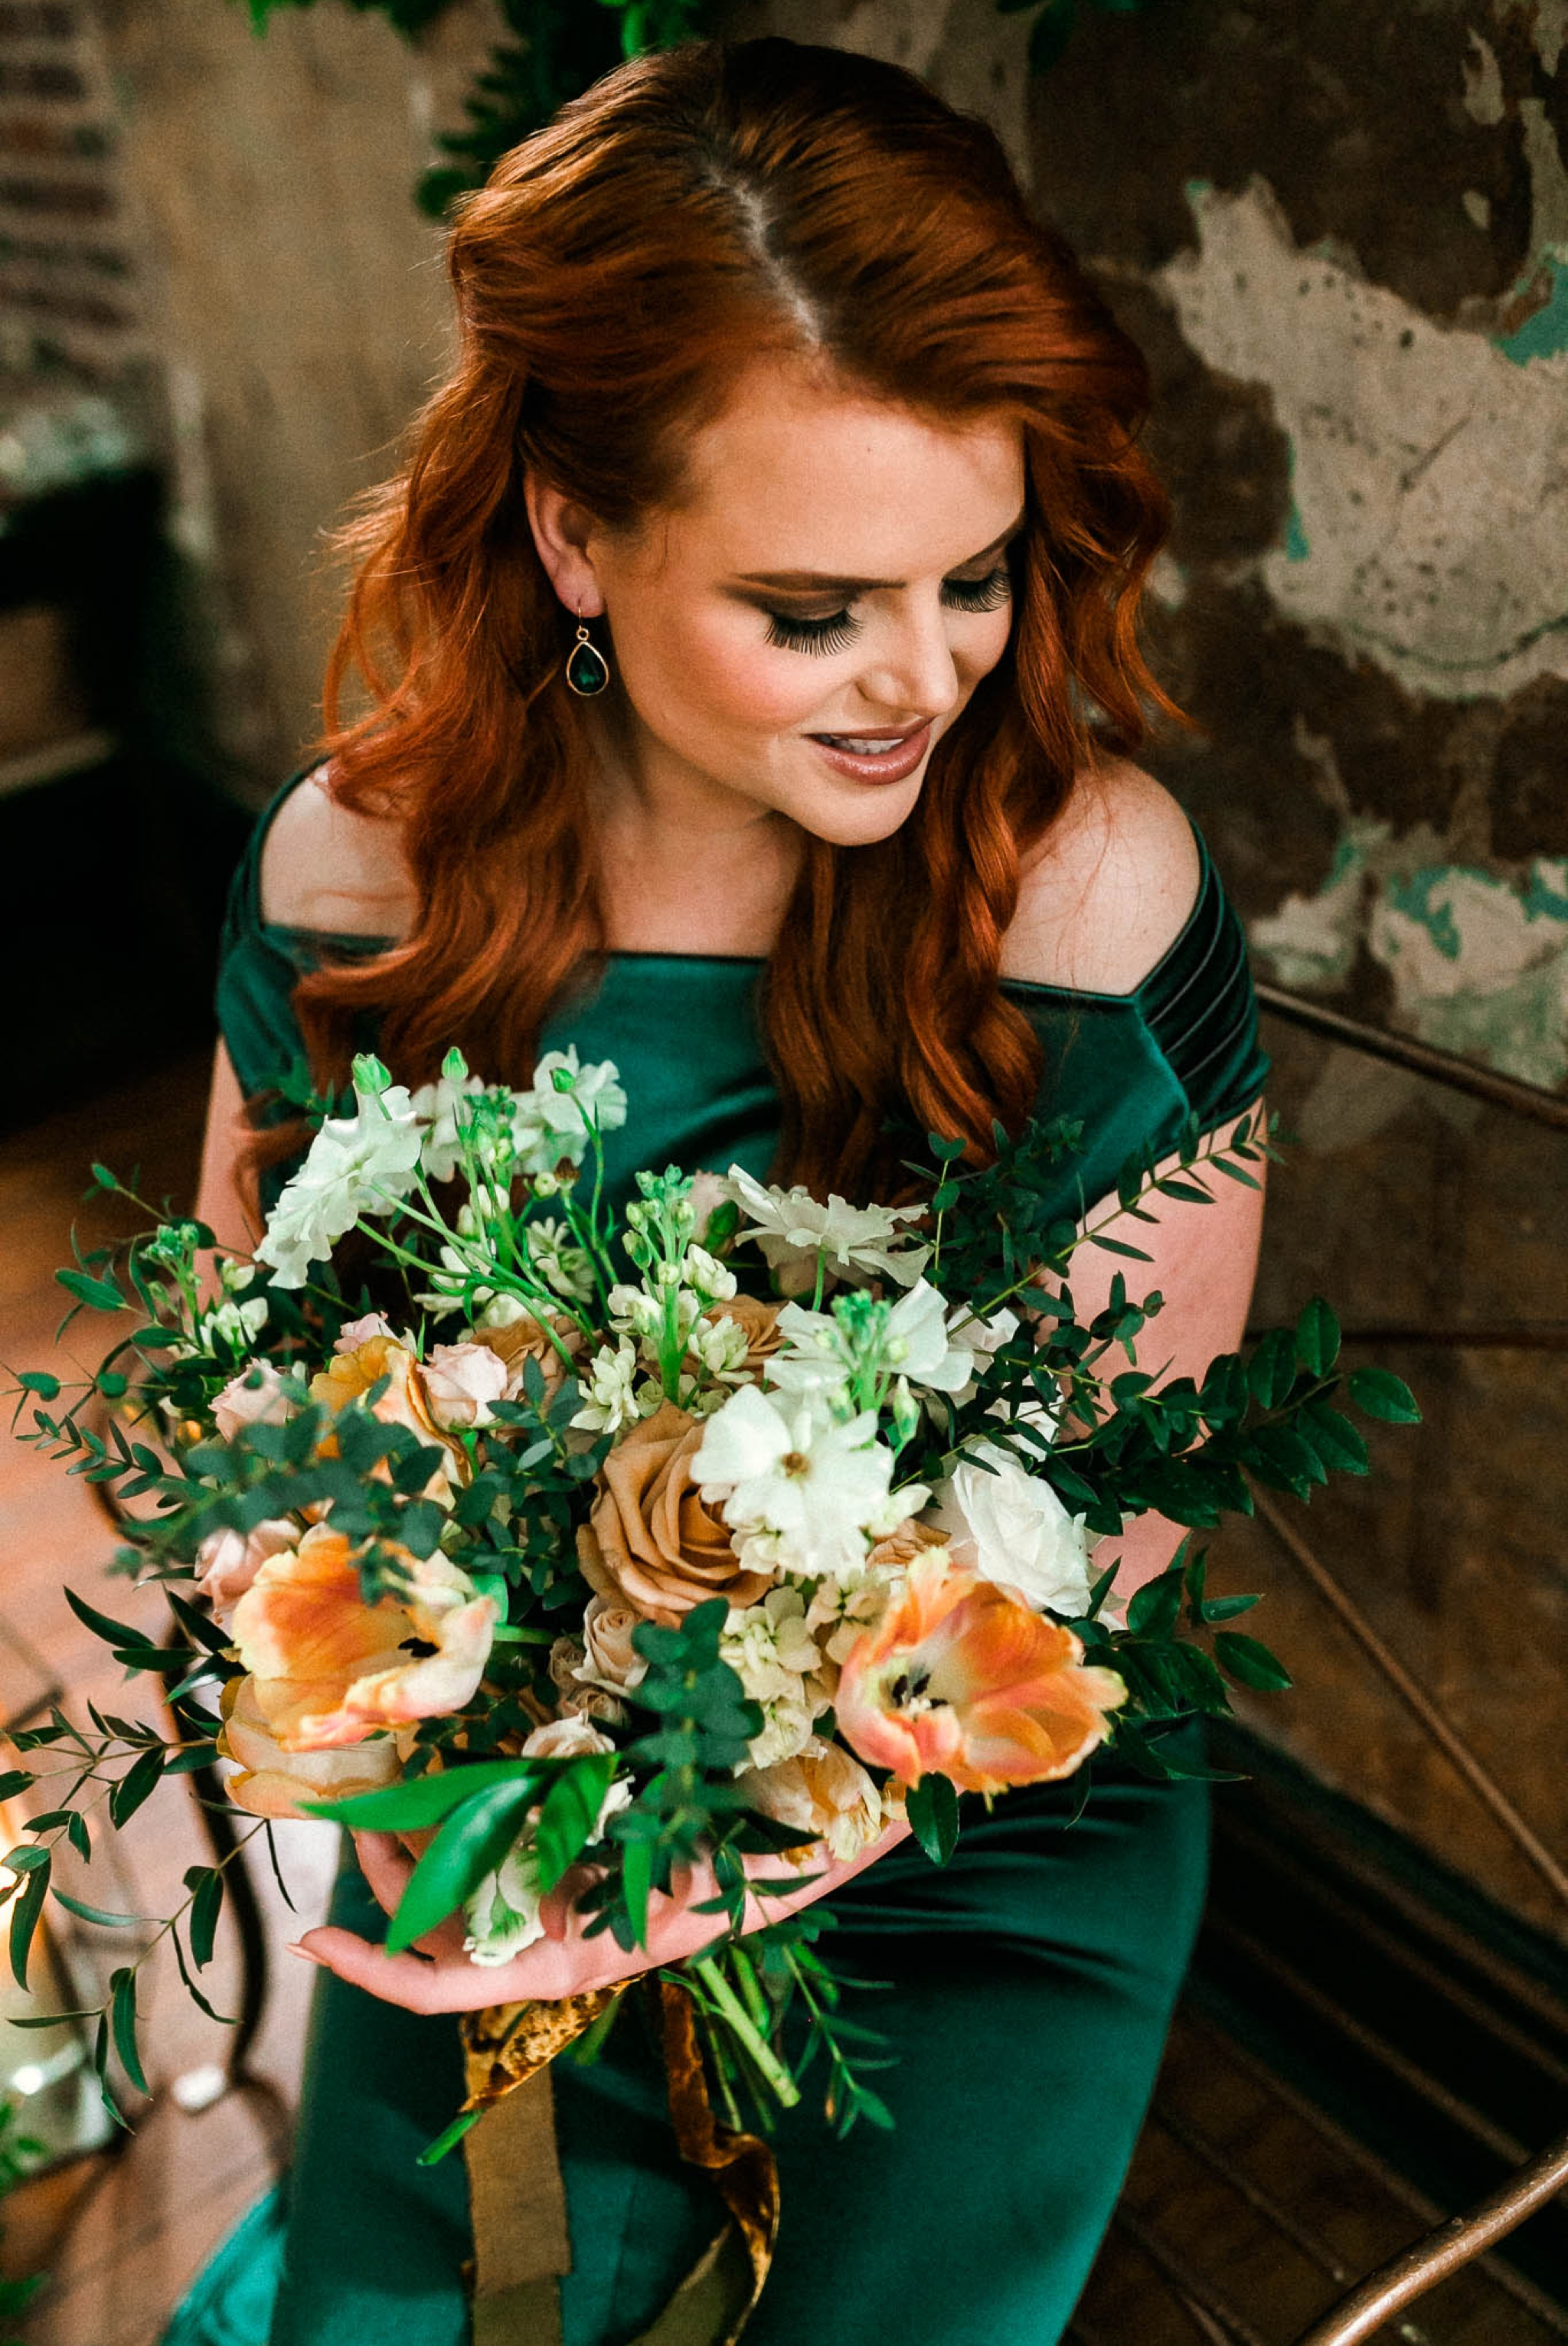 Close up Portrait of a Red Headed Bride in an Unusual Emerald Wedding Dress holding a gorgeous bouquet -  Green Wedding Inspiration - Oahu Hawaii Wedding Photographer - Johanna Dye Photography